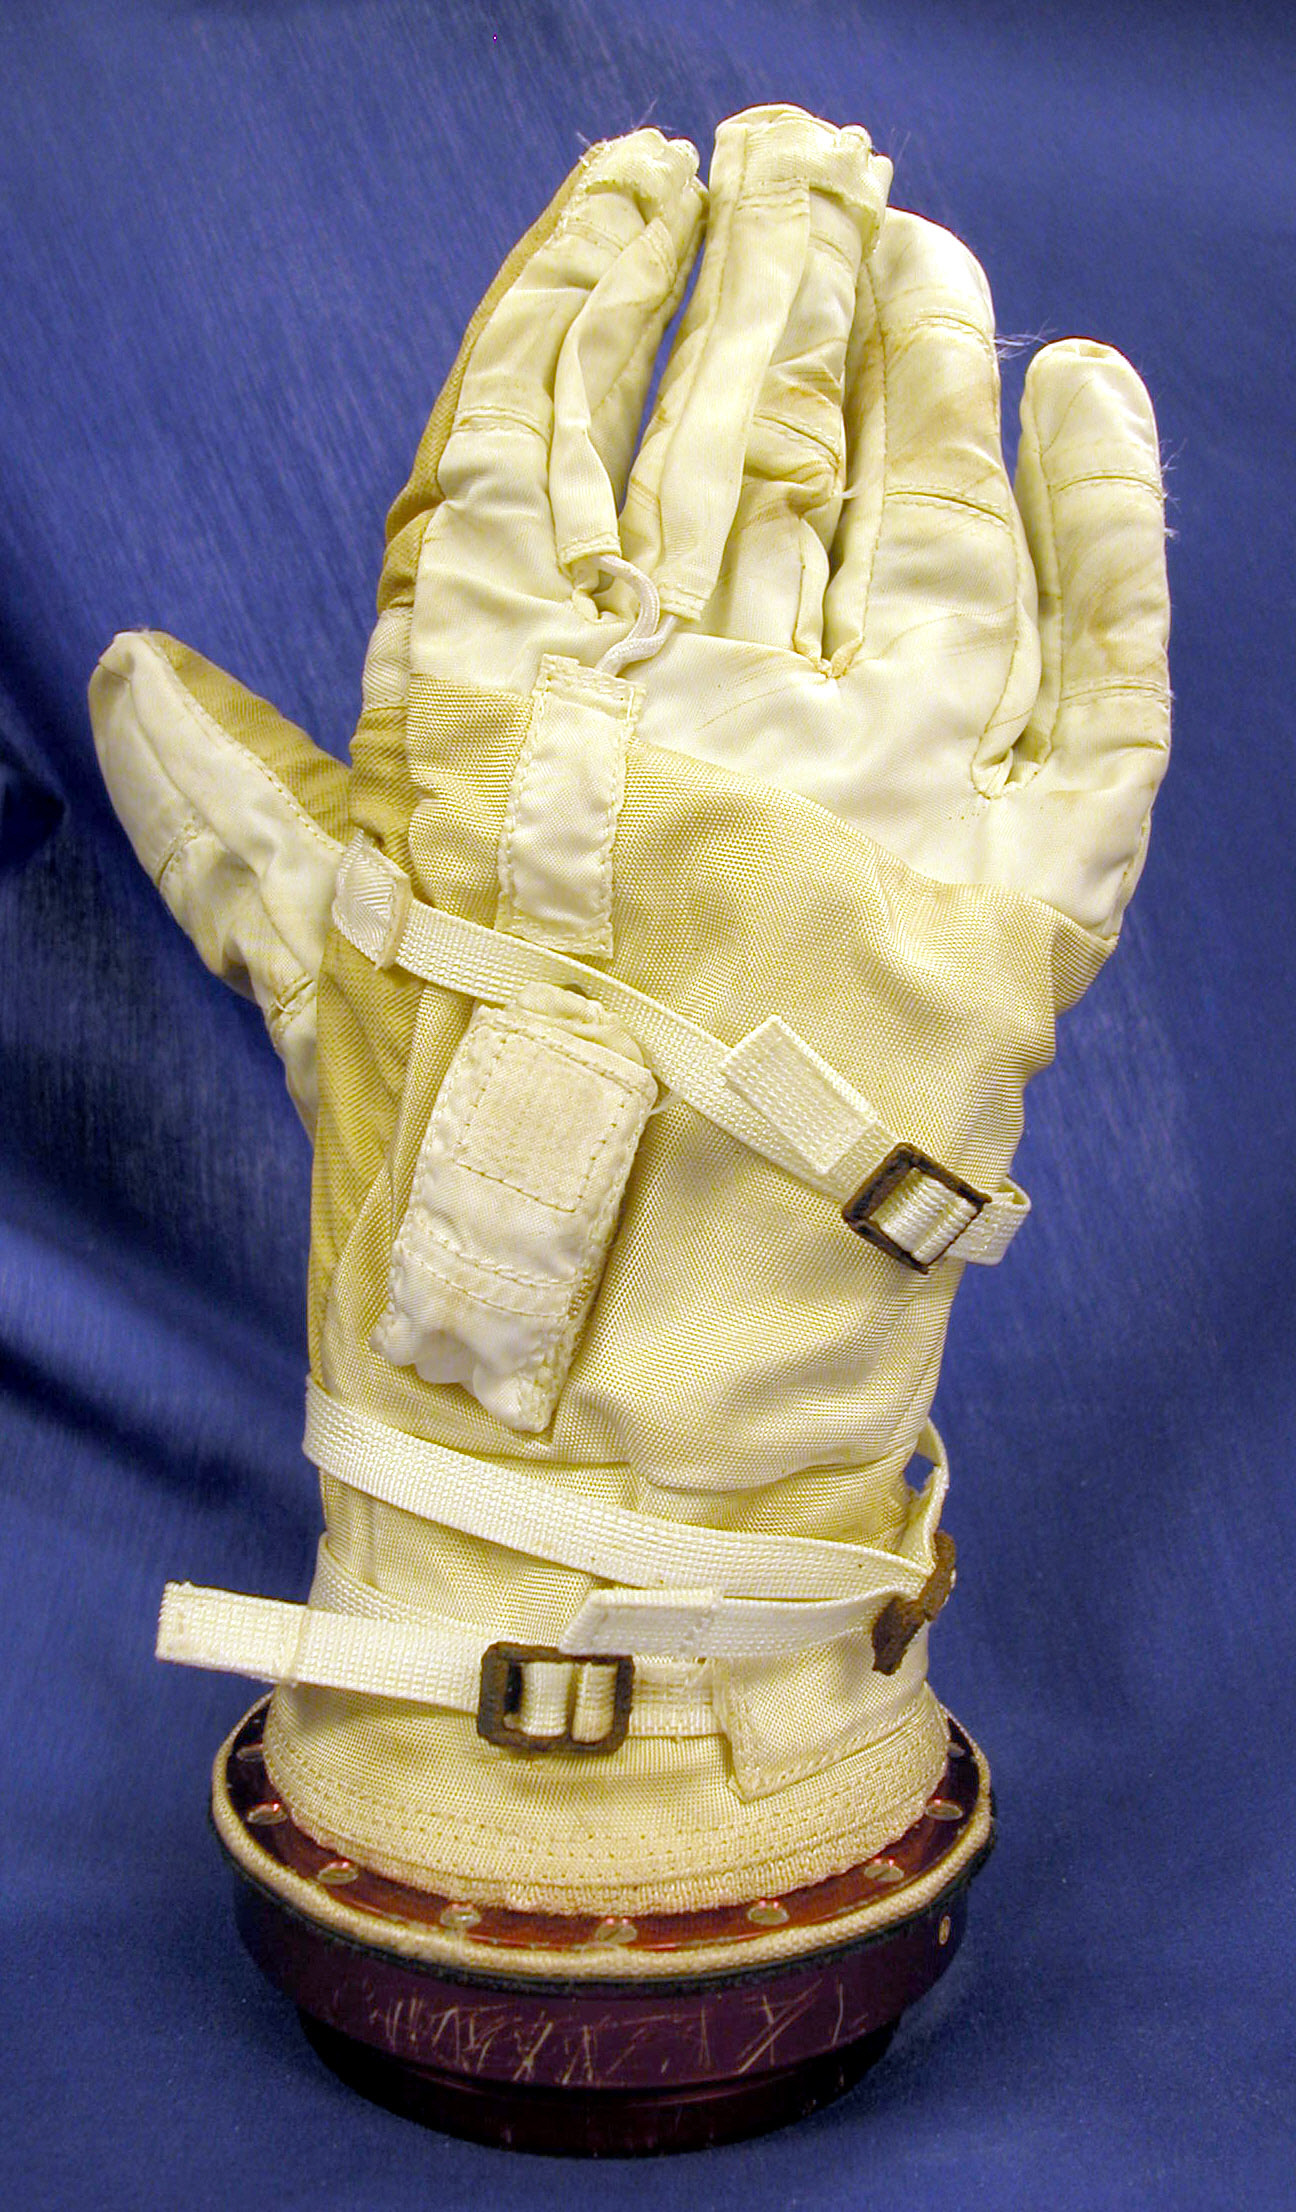 Image of : Glove, Right, G3-C, Gemini 3, Grissom, Flown